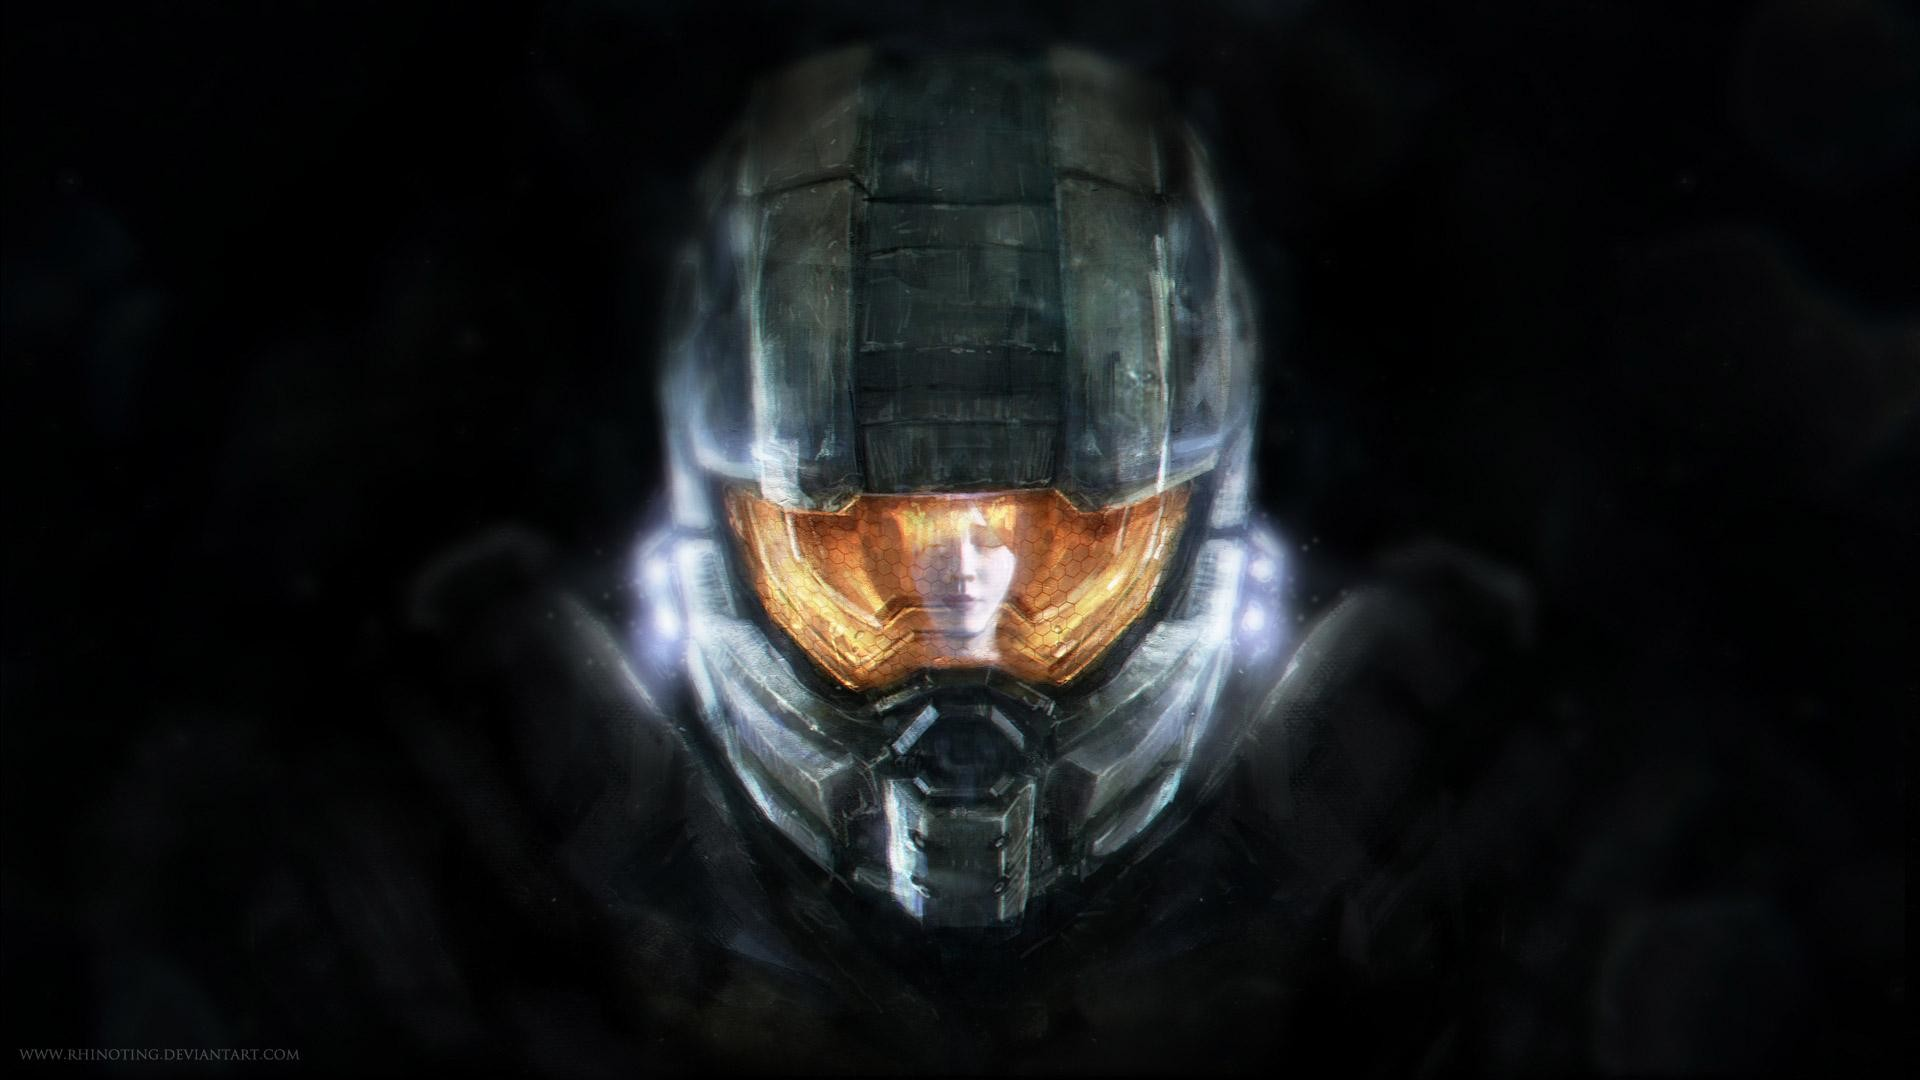 Halo Wallpaper Pictures 1920×1080 Halo 4 Wallpapers HD (51 Wallpapers) |  Adorable